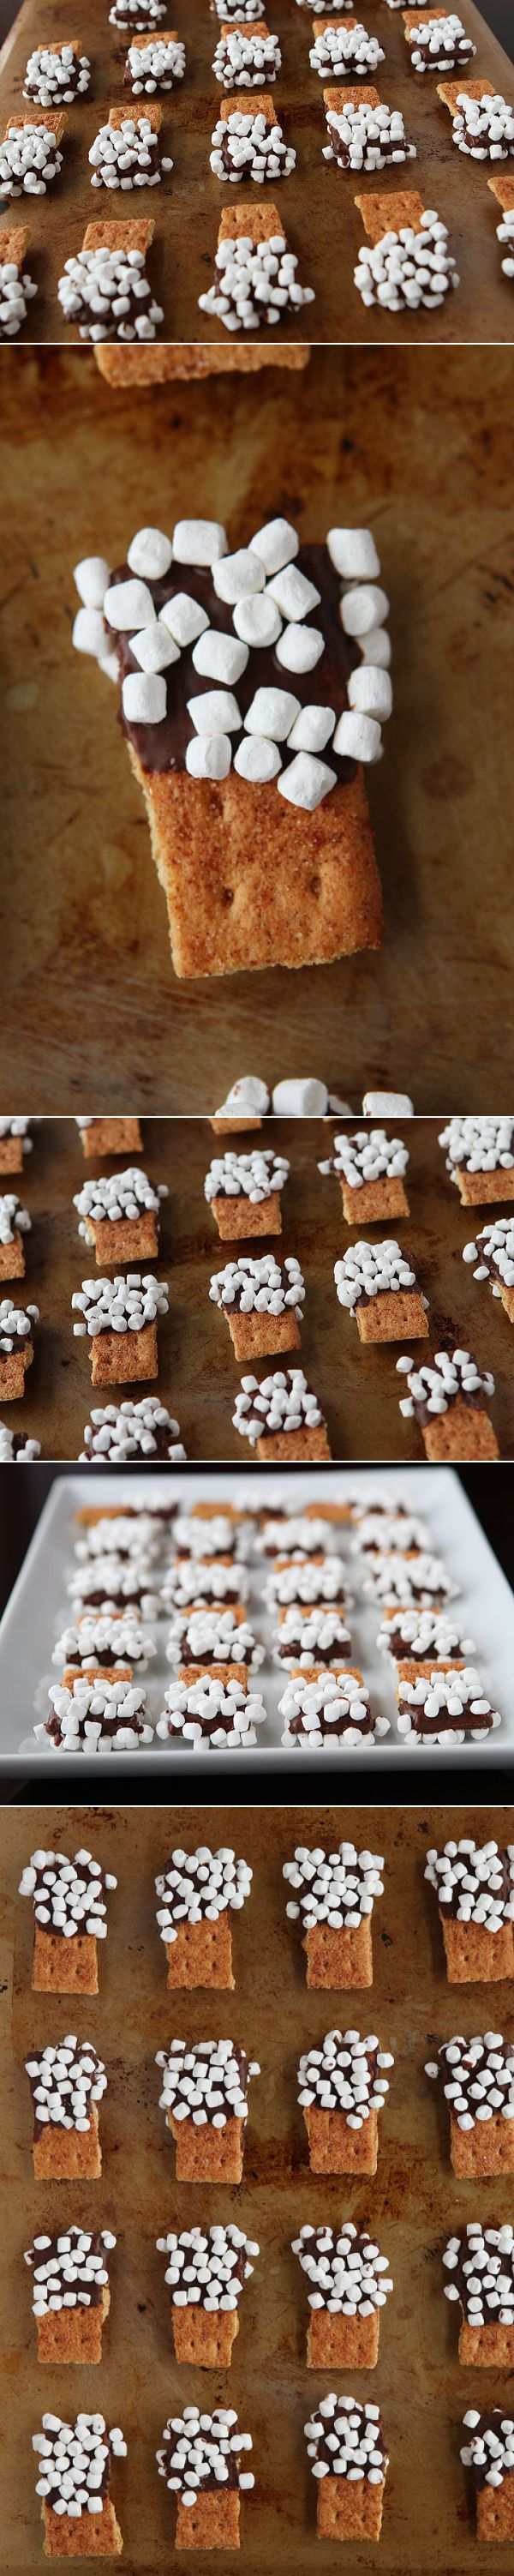 Fall snack #3 - S'mores Mini Dippers. Perfect for parties and CUTE appetizers!!